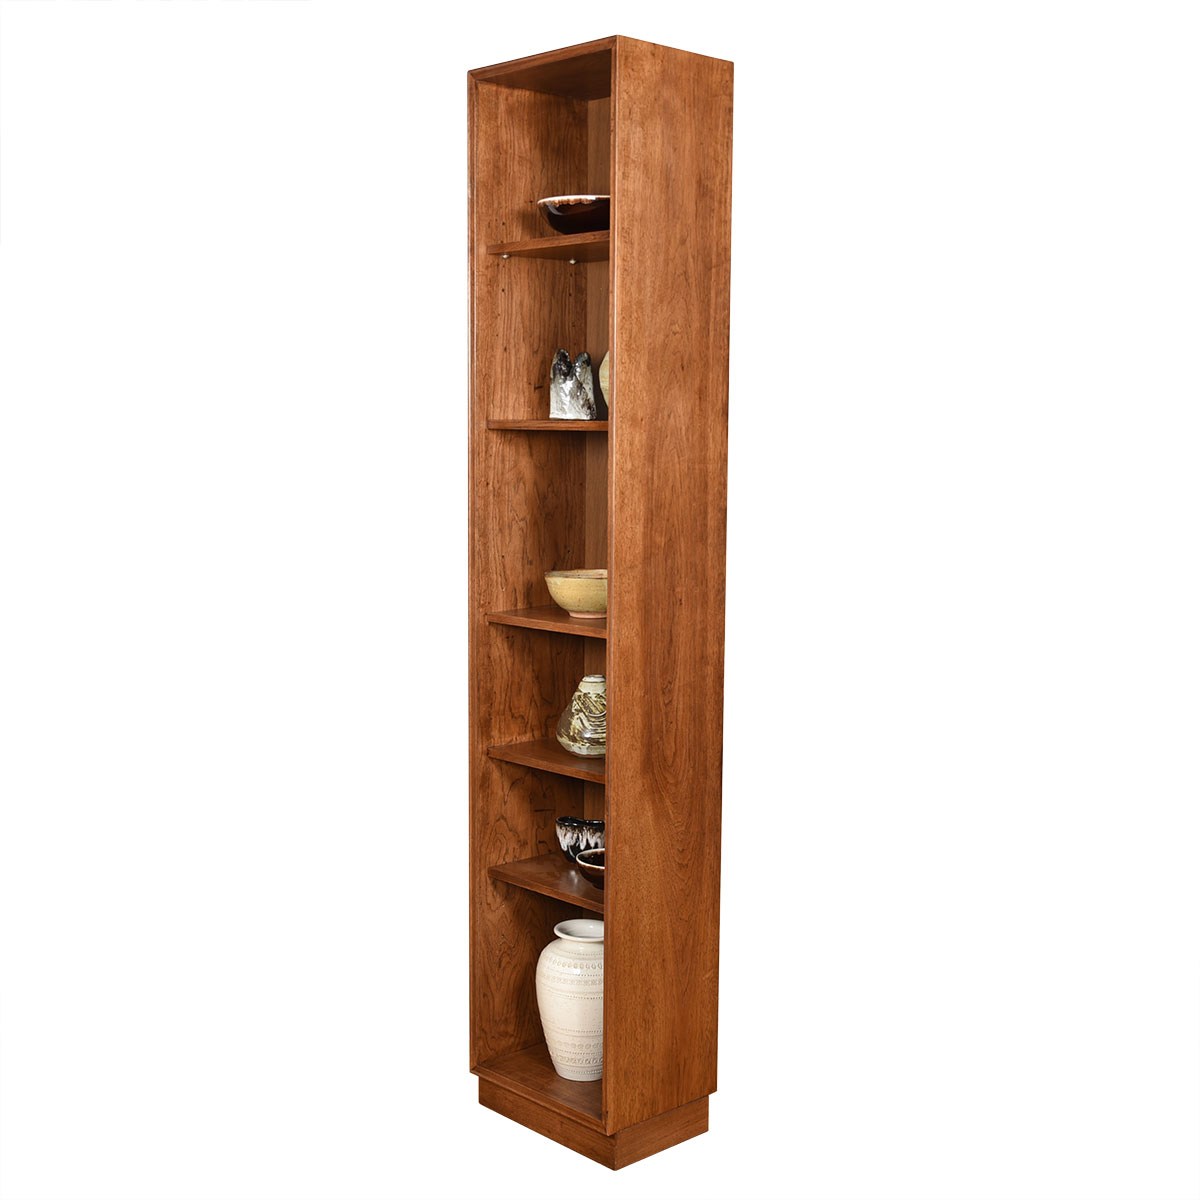 Thin + Tall Bookcase w/ Adjustable Shelves